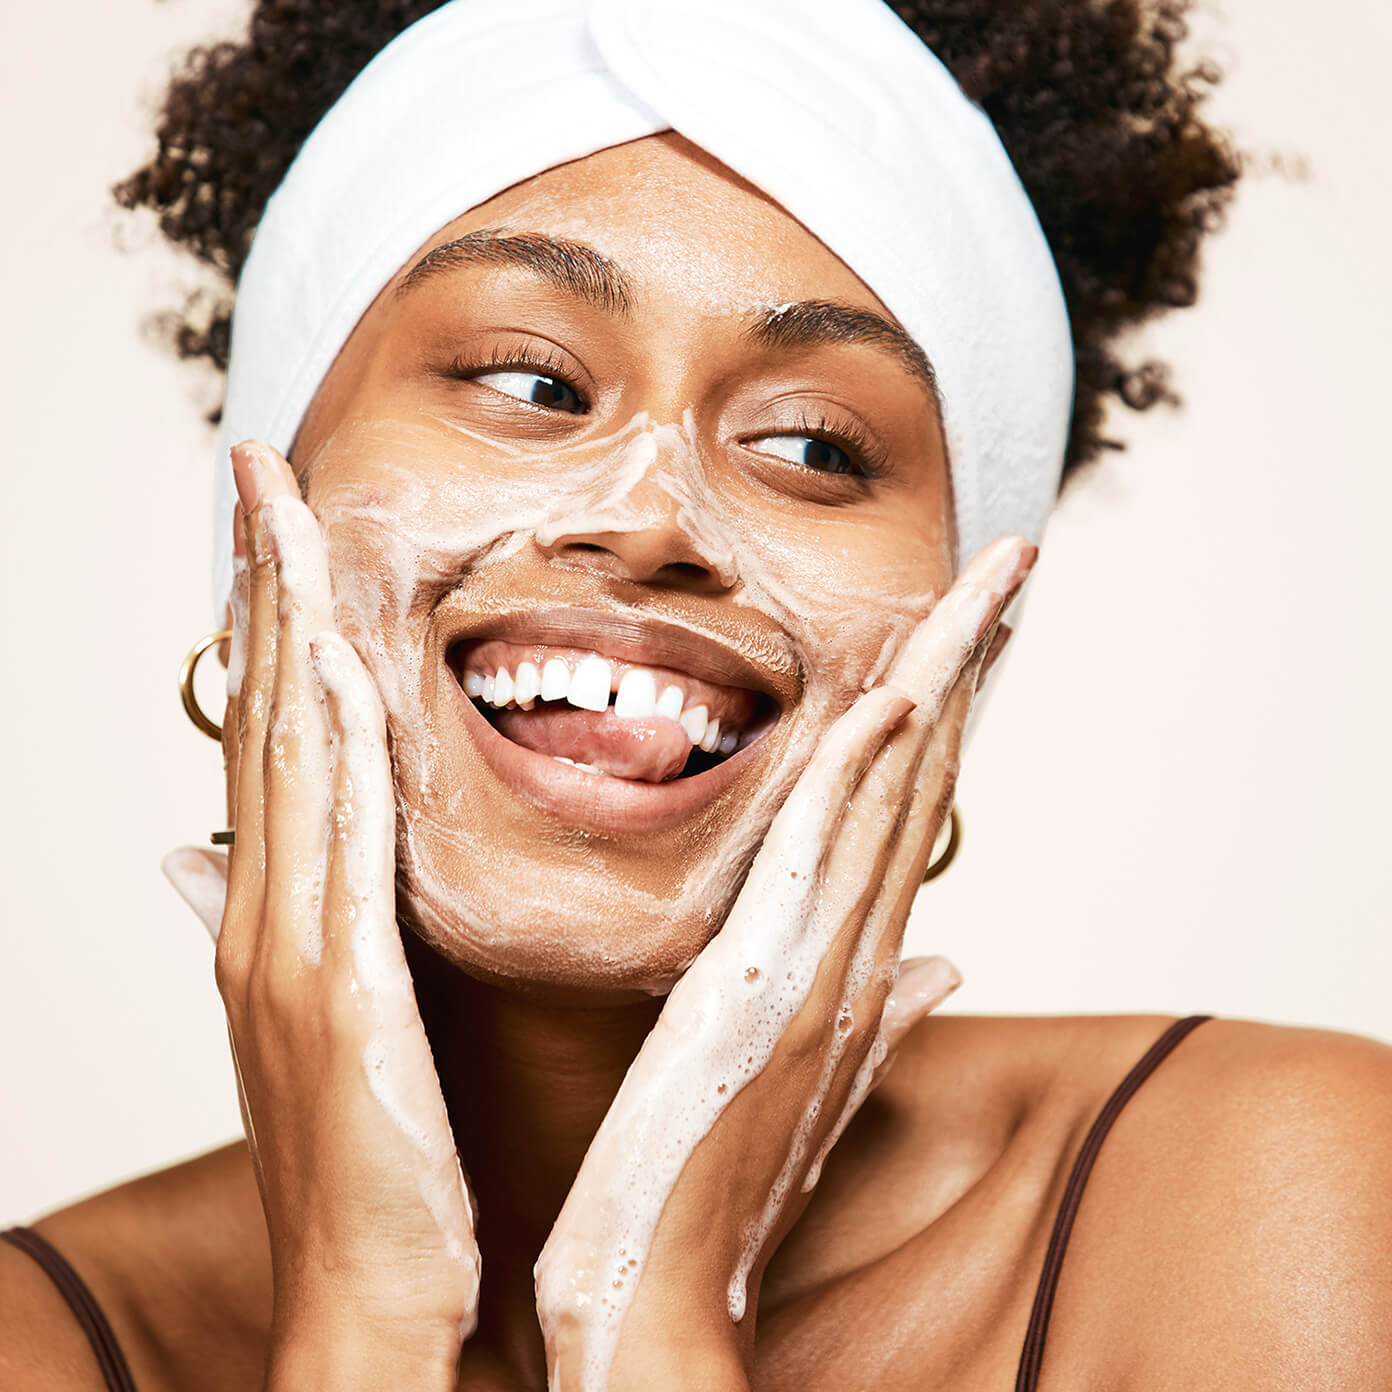 Taj using Clear Collective Exfoliating Jelly Cleanser